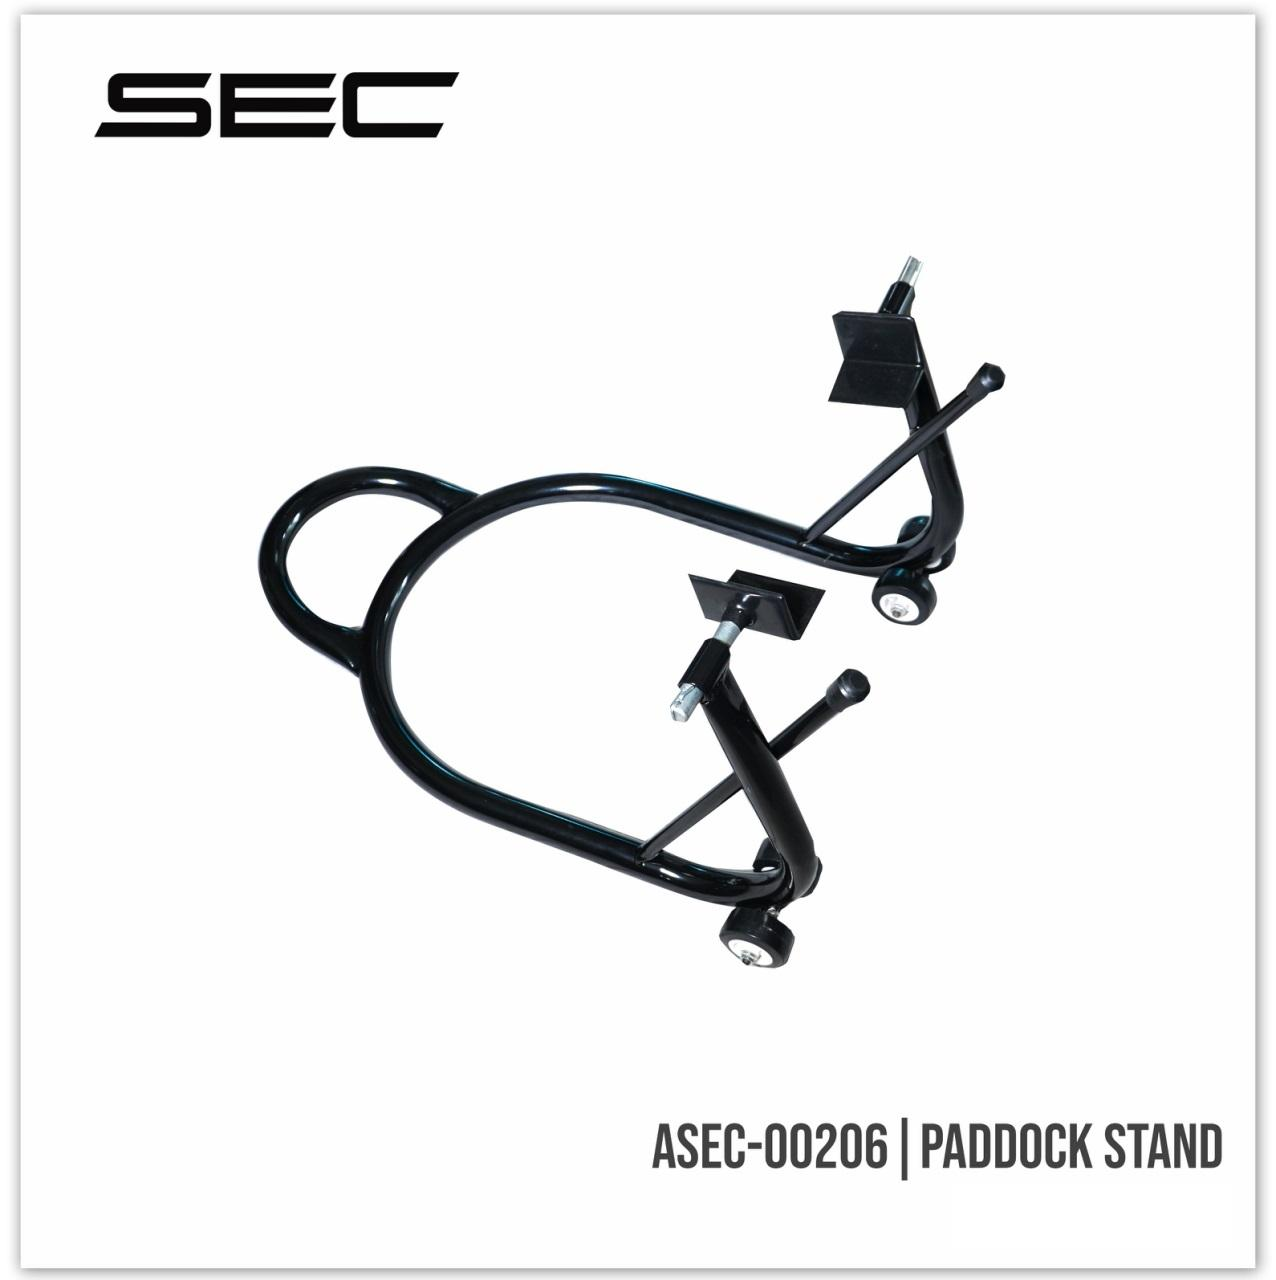 Asec 00206 Universal Motorcycle Paddock Stand Black Lazada Ph New Cbr150r